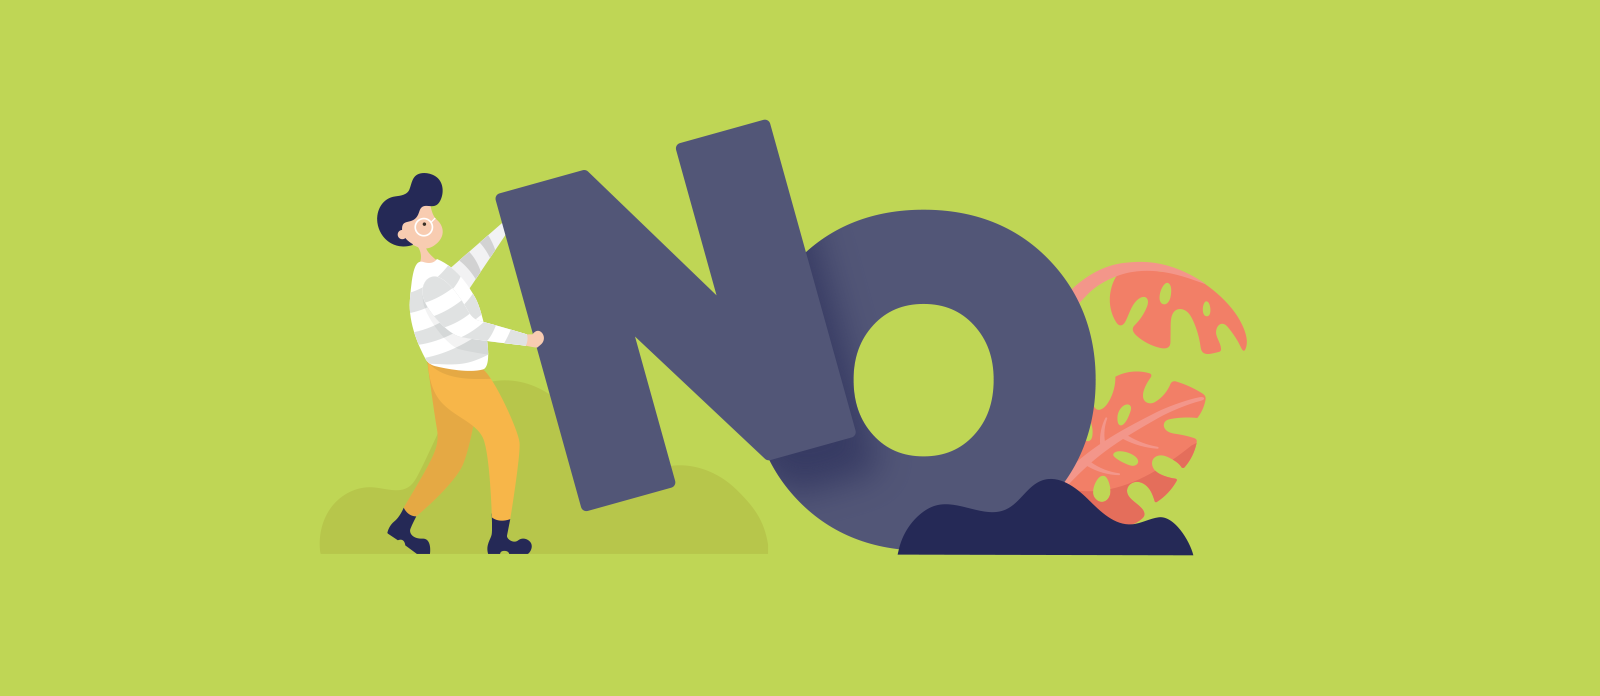 how to say no nicely